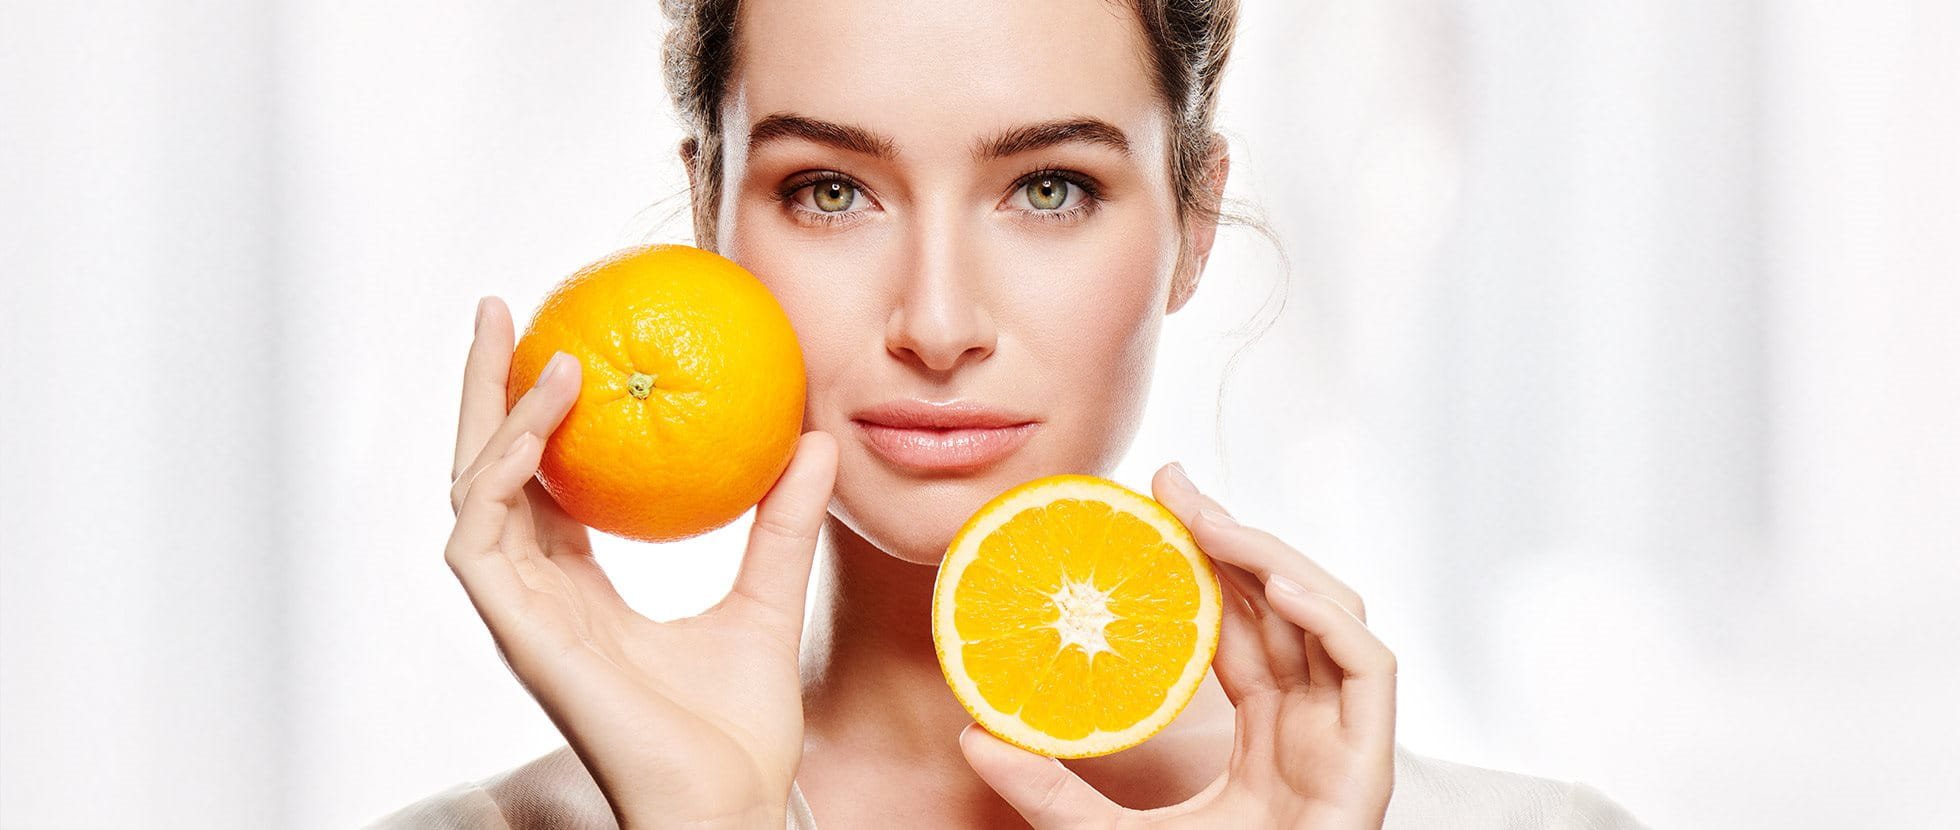 Vitamin C antioxidant for skin